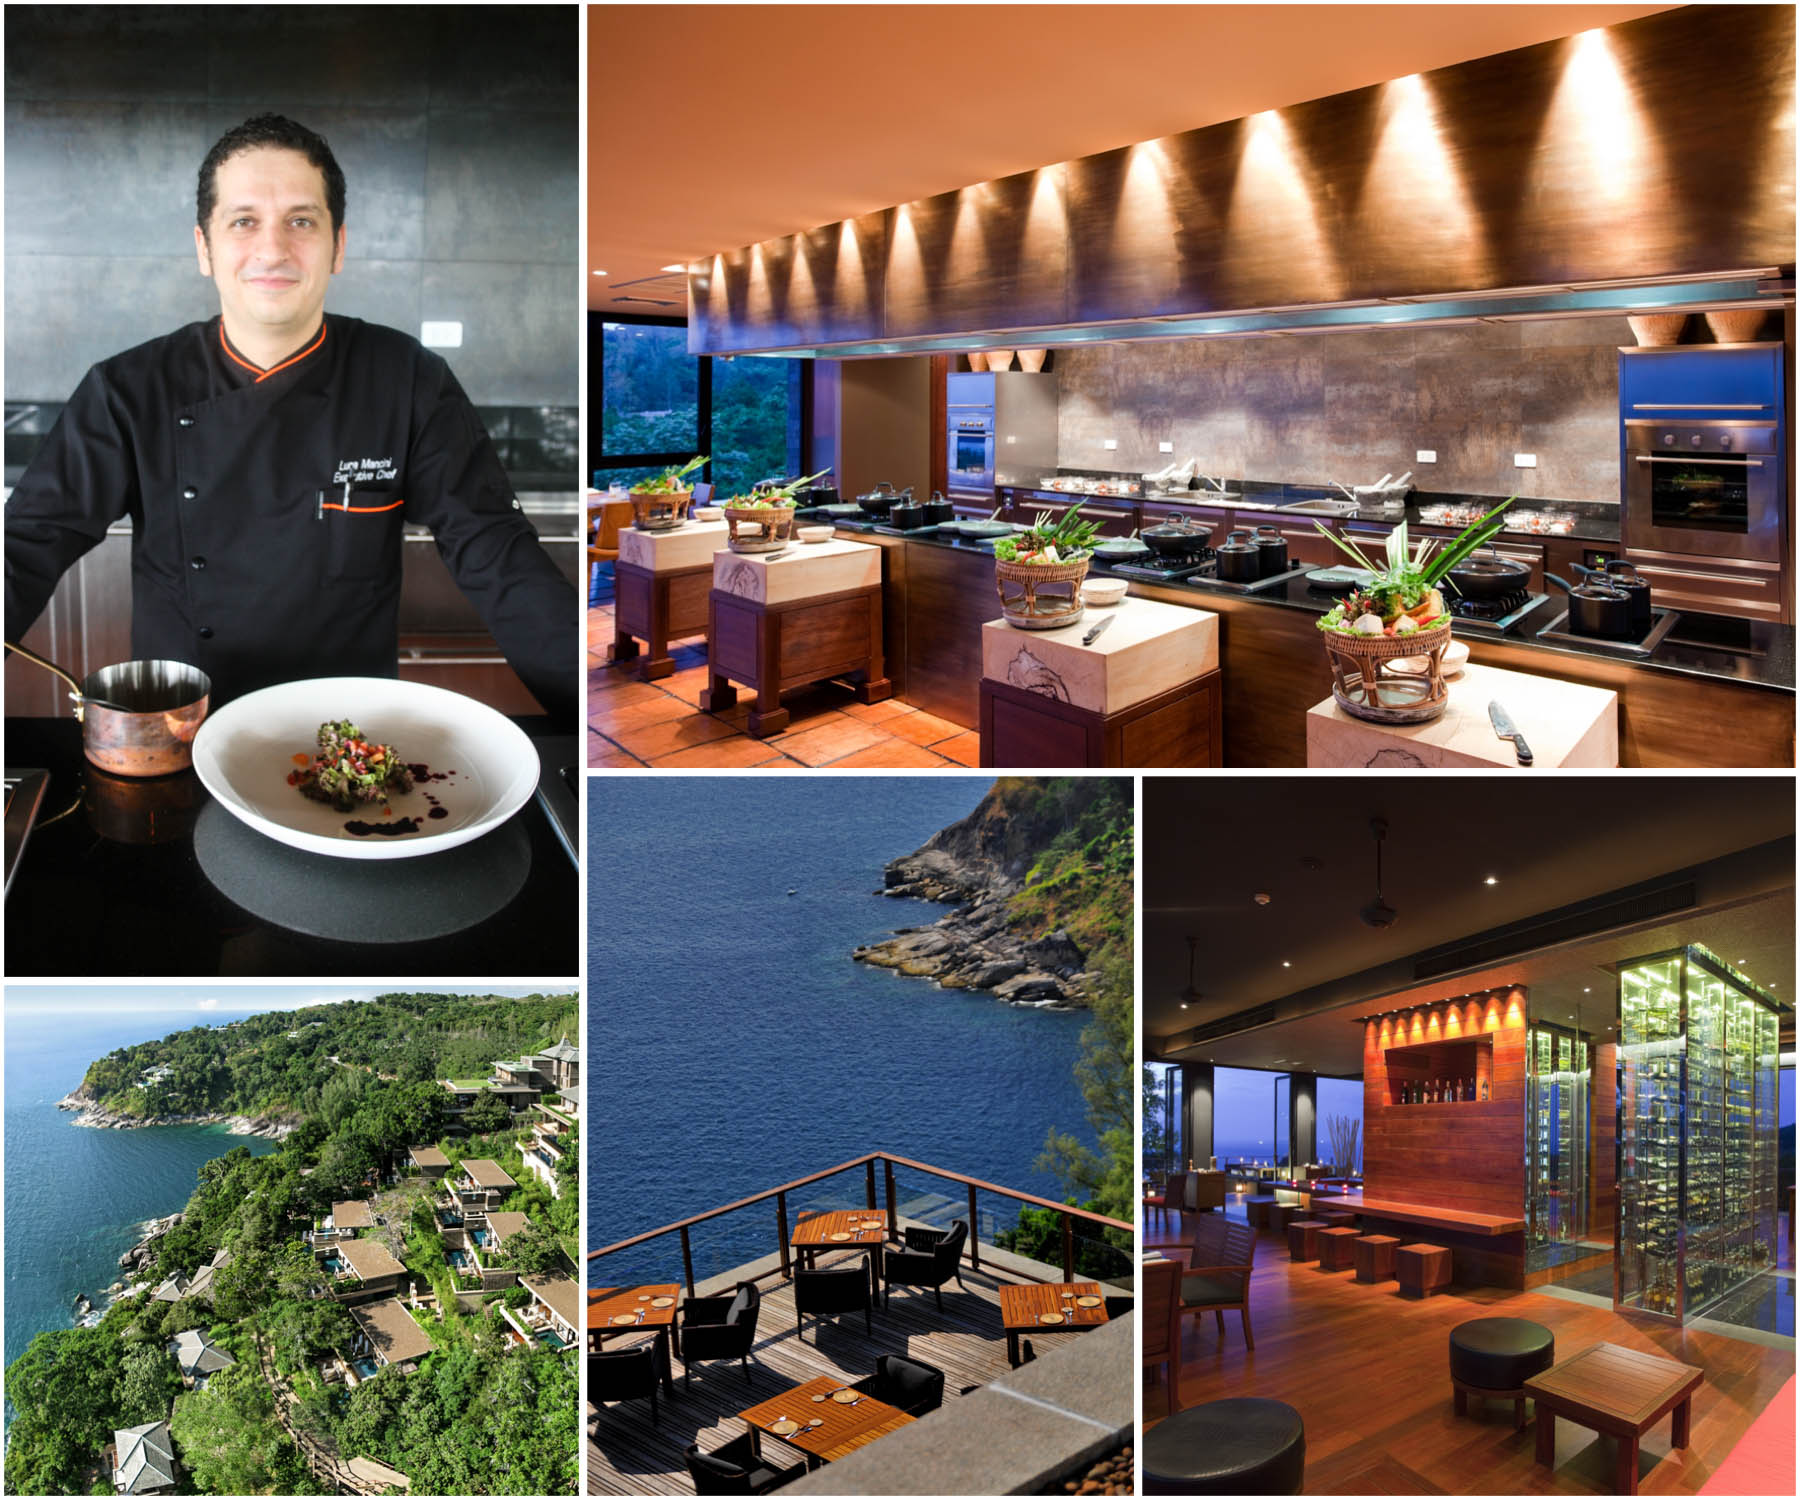 Paresa Resort Executive Chef Luca Mancini